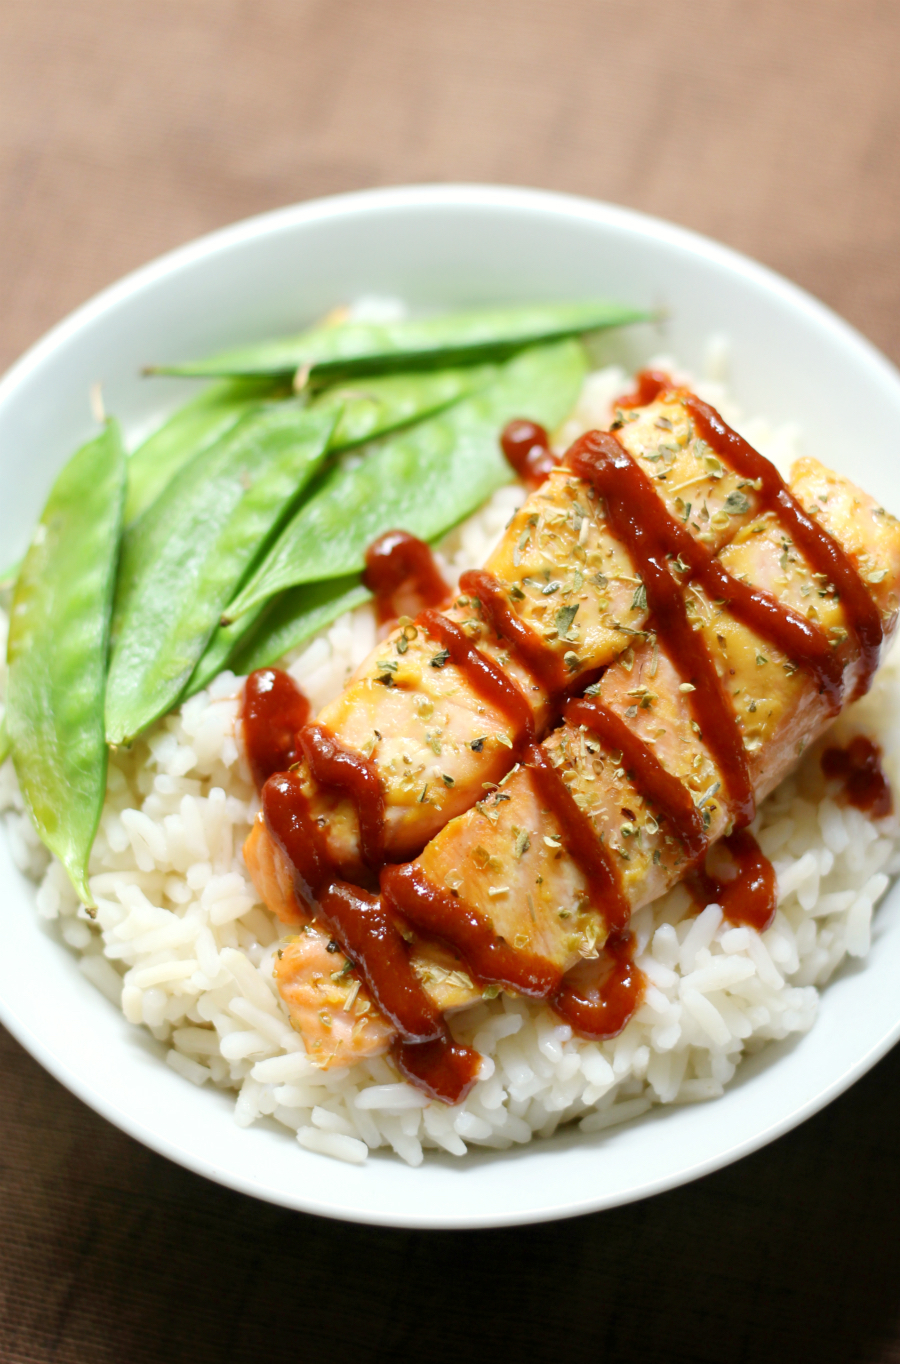 Sriracha Honey Mustard Salmon (Gluten-Free, Paleo) | Strength and Sunshine @RebeccaGF666 Spicy and tamed with a little sweetness! Sriracha Honey Mustard Salmon that's gluten-free, paleo, rich, and super flavorful! This recipe is an easy way to amp up the flavor and bring a healthy meal to the dinner table in a flash!